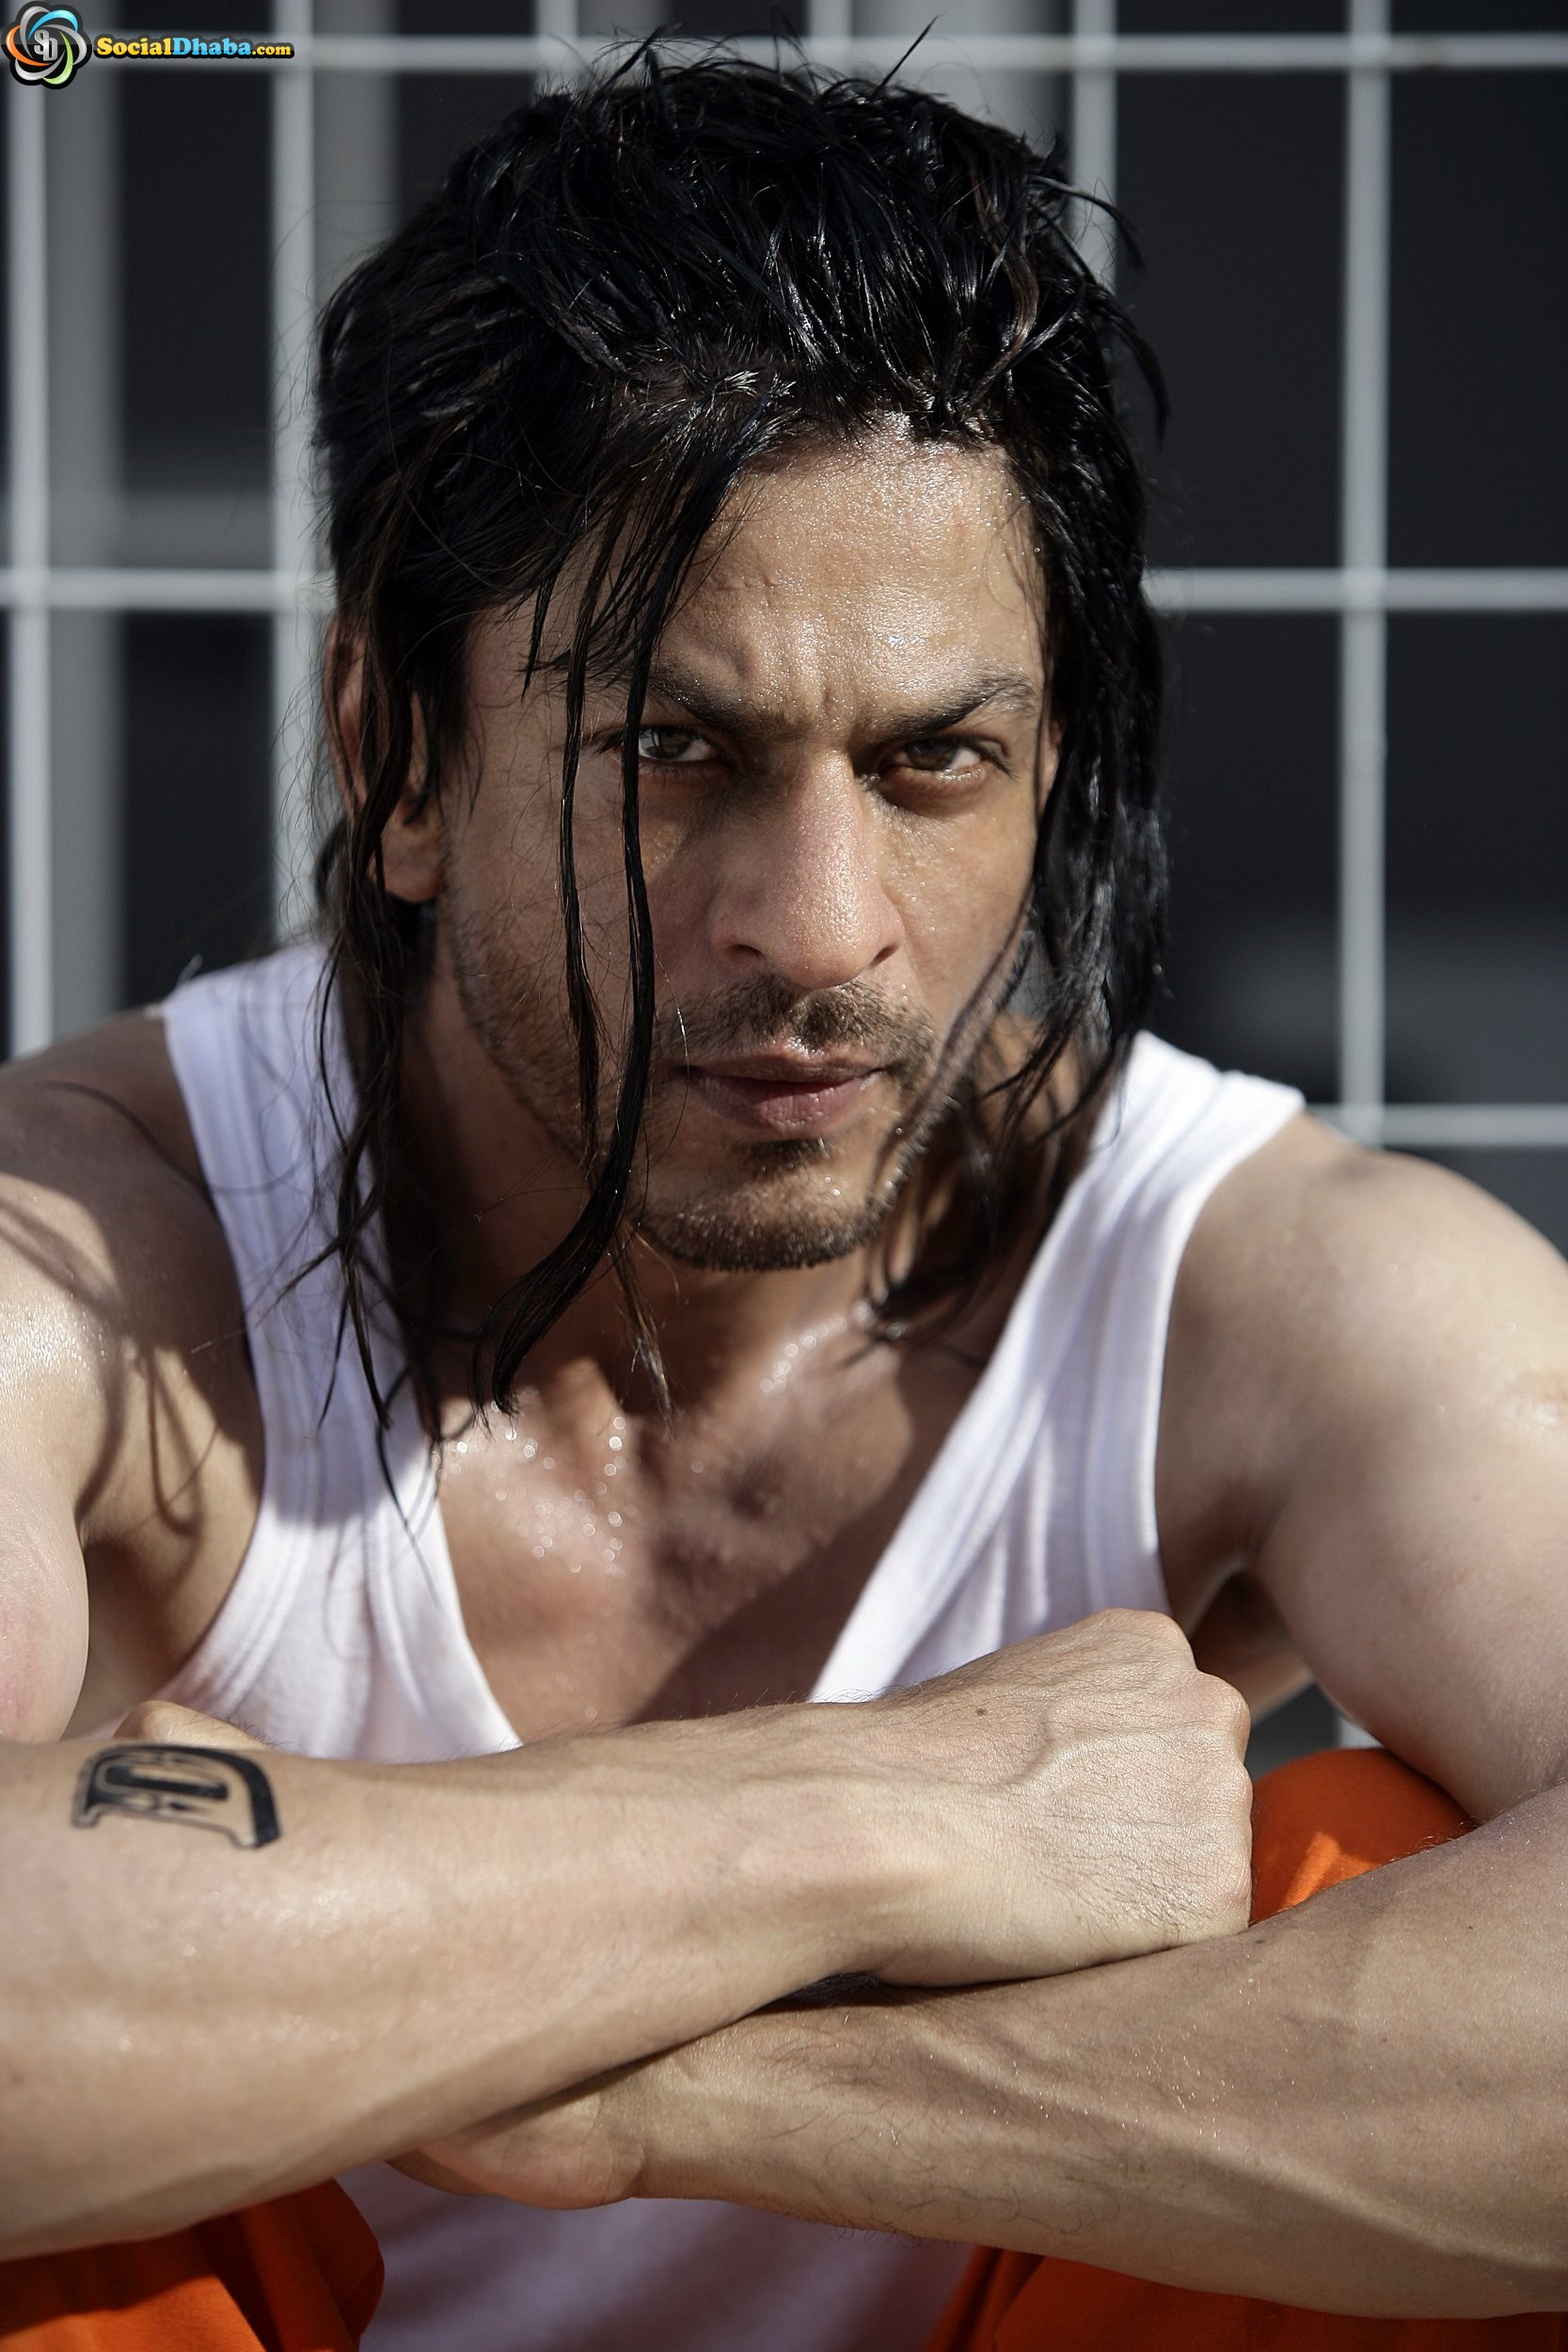 Res: 1667x2500, sharukh khan images Don 2 - Wallpaper HD wallpaper and background photos